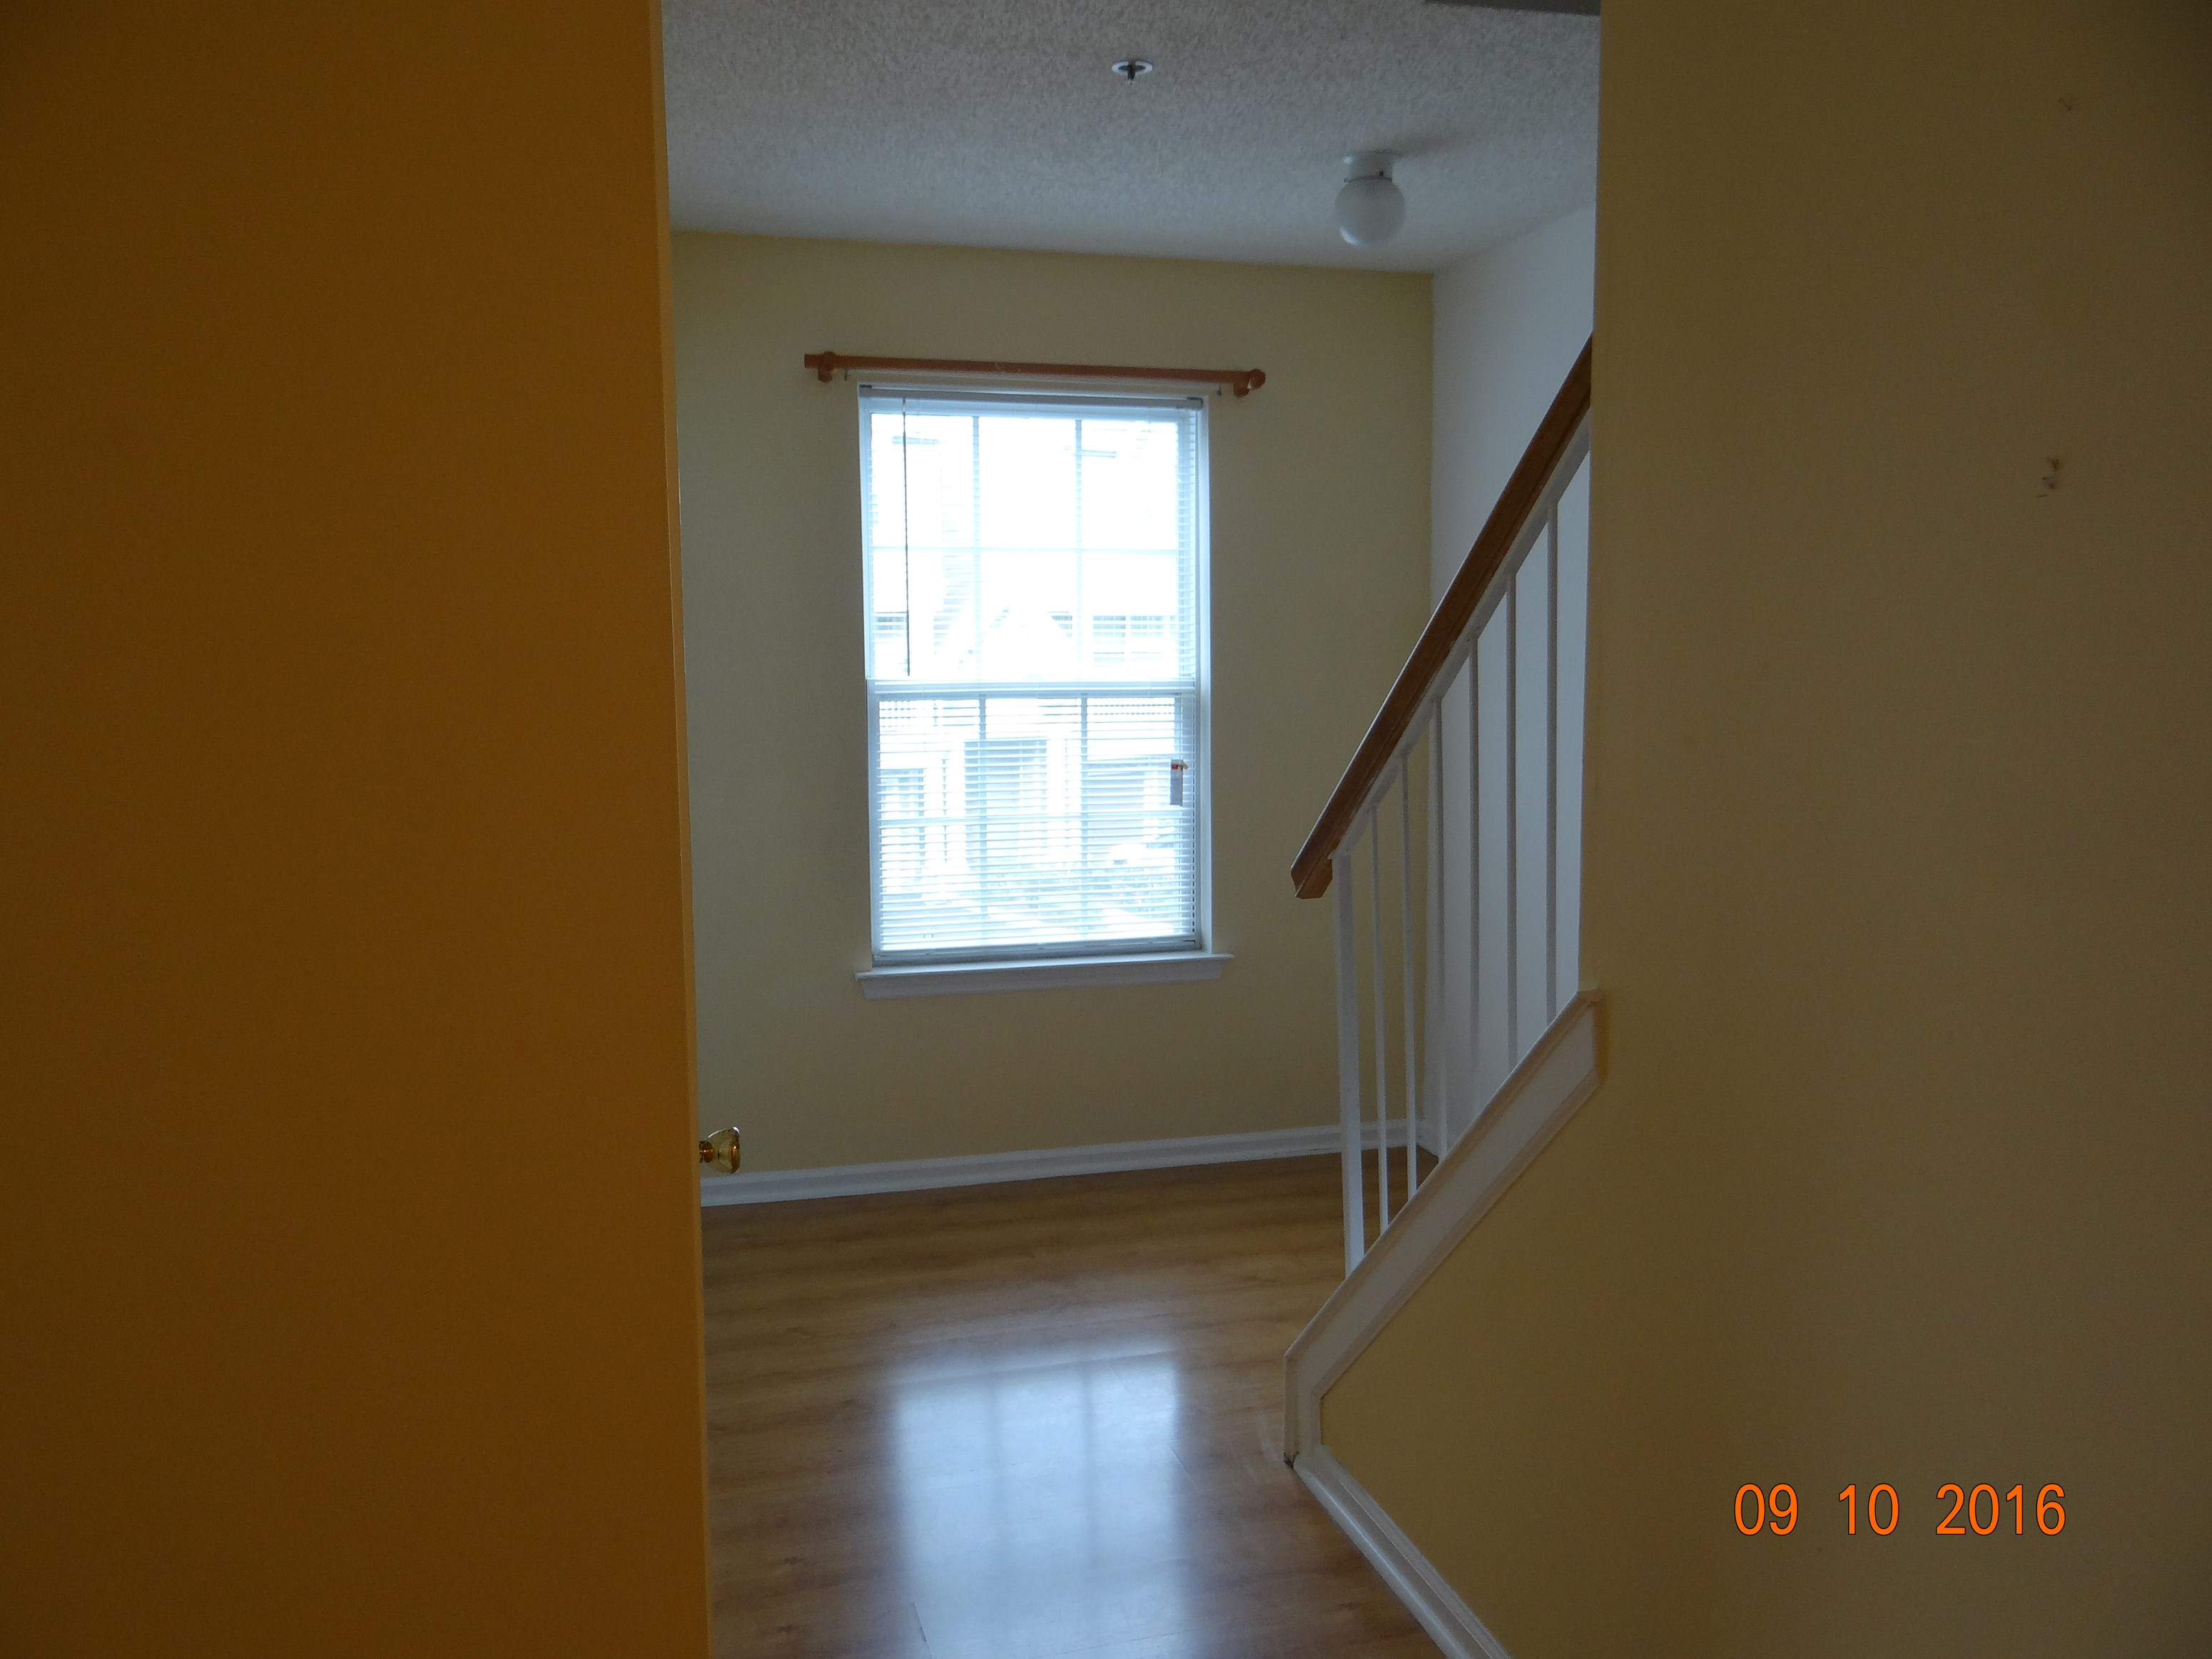 3 Bedroom House for Rent in Edison NJ Three Bedroom Homes for